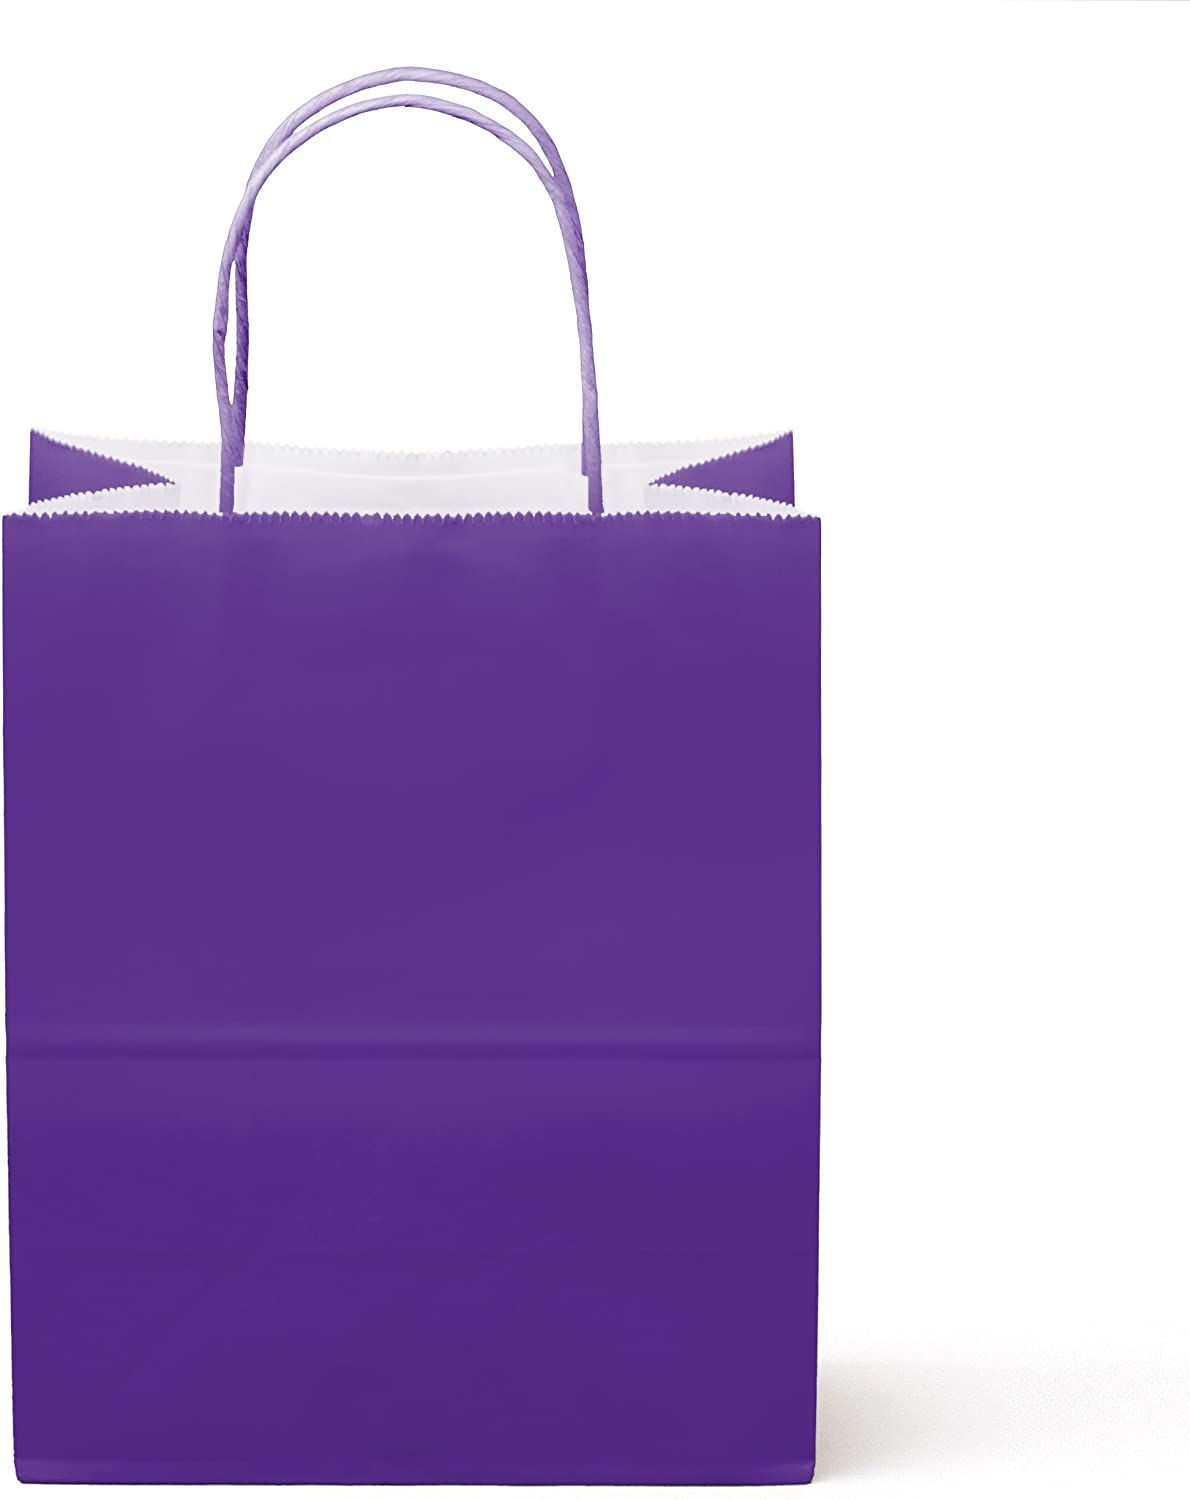 """24 Counts Food Safe Premium Paper and Ink Medium 10"""" X 8"""", Vivid Colored Kraft Bag with Colored Sturdy Handle, Perfect for Goodie Favor DIY Bag, Environmentally Safe (Medium, Purple)"""